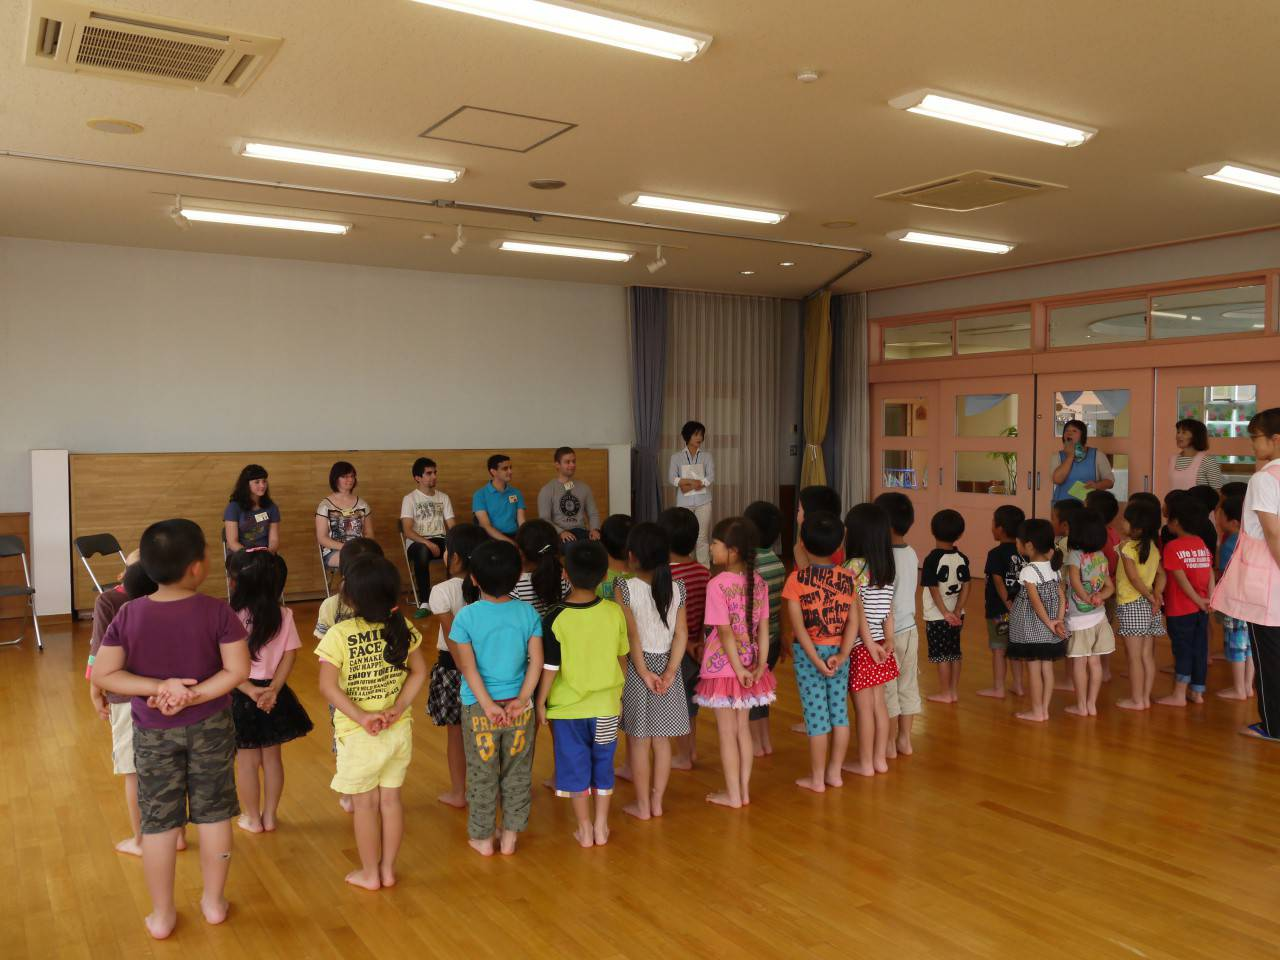 Undergraduate exchange student visited japanese local kindergarten the exchange students first introduced themselves in japanese and then taught children how to greet each other in the exchange students countries m4hsunfo